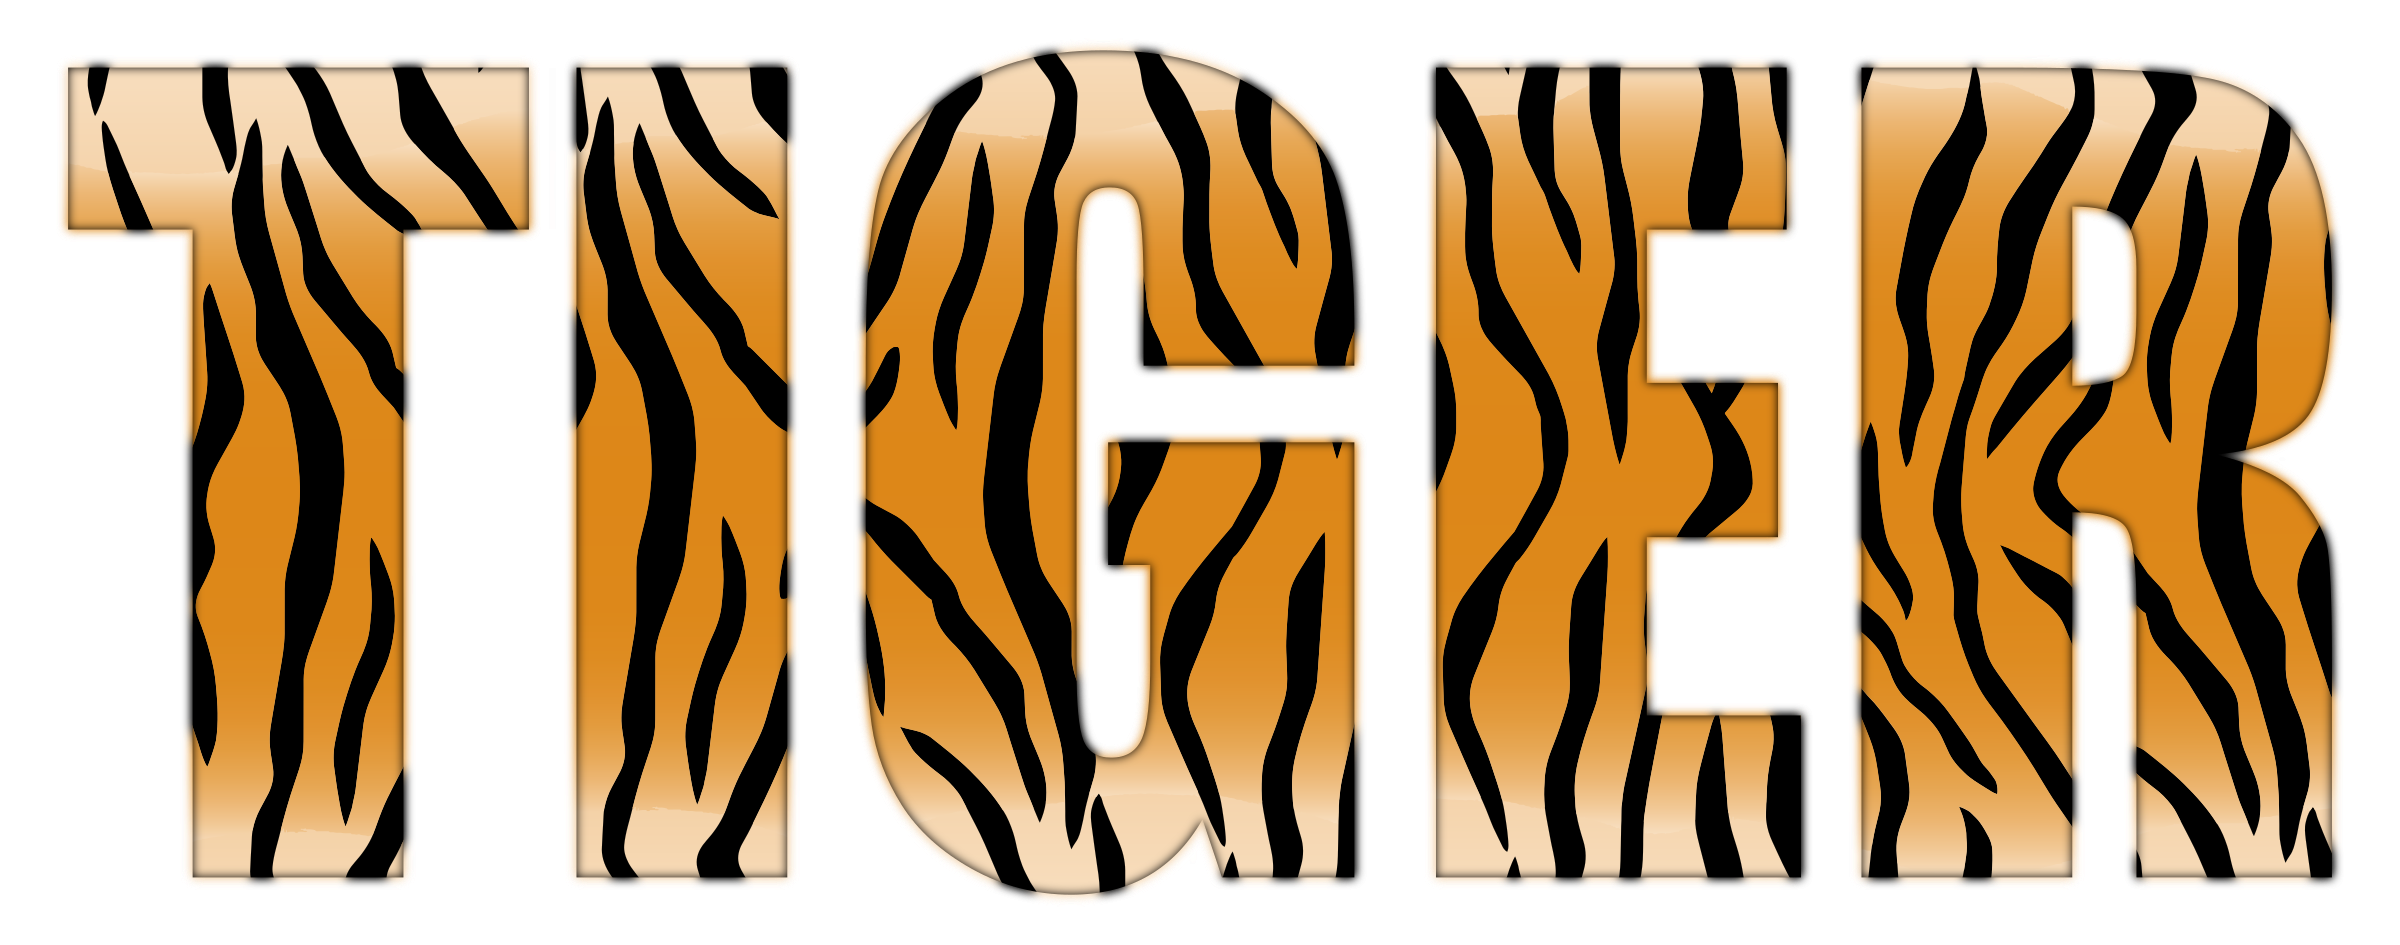 Typography enhanced big image. Clipart tiger abstract